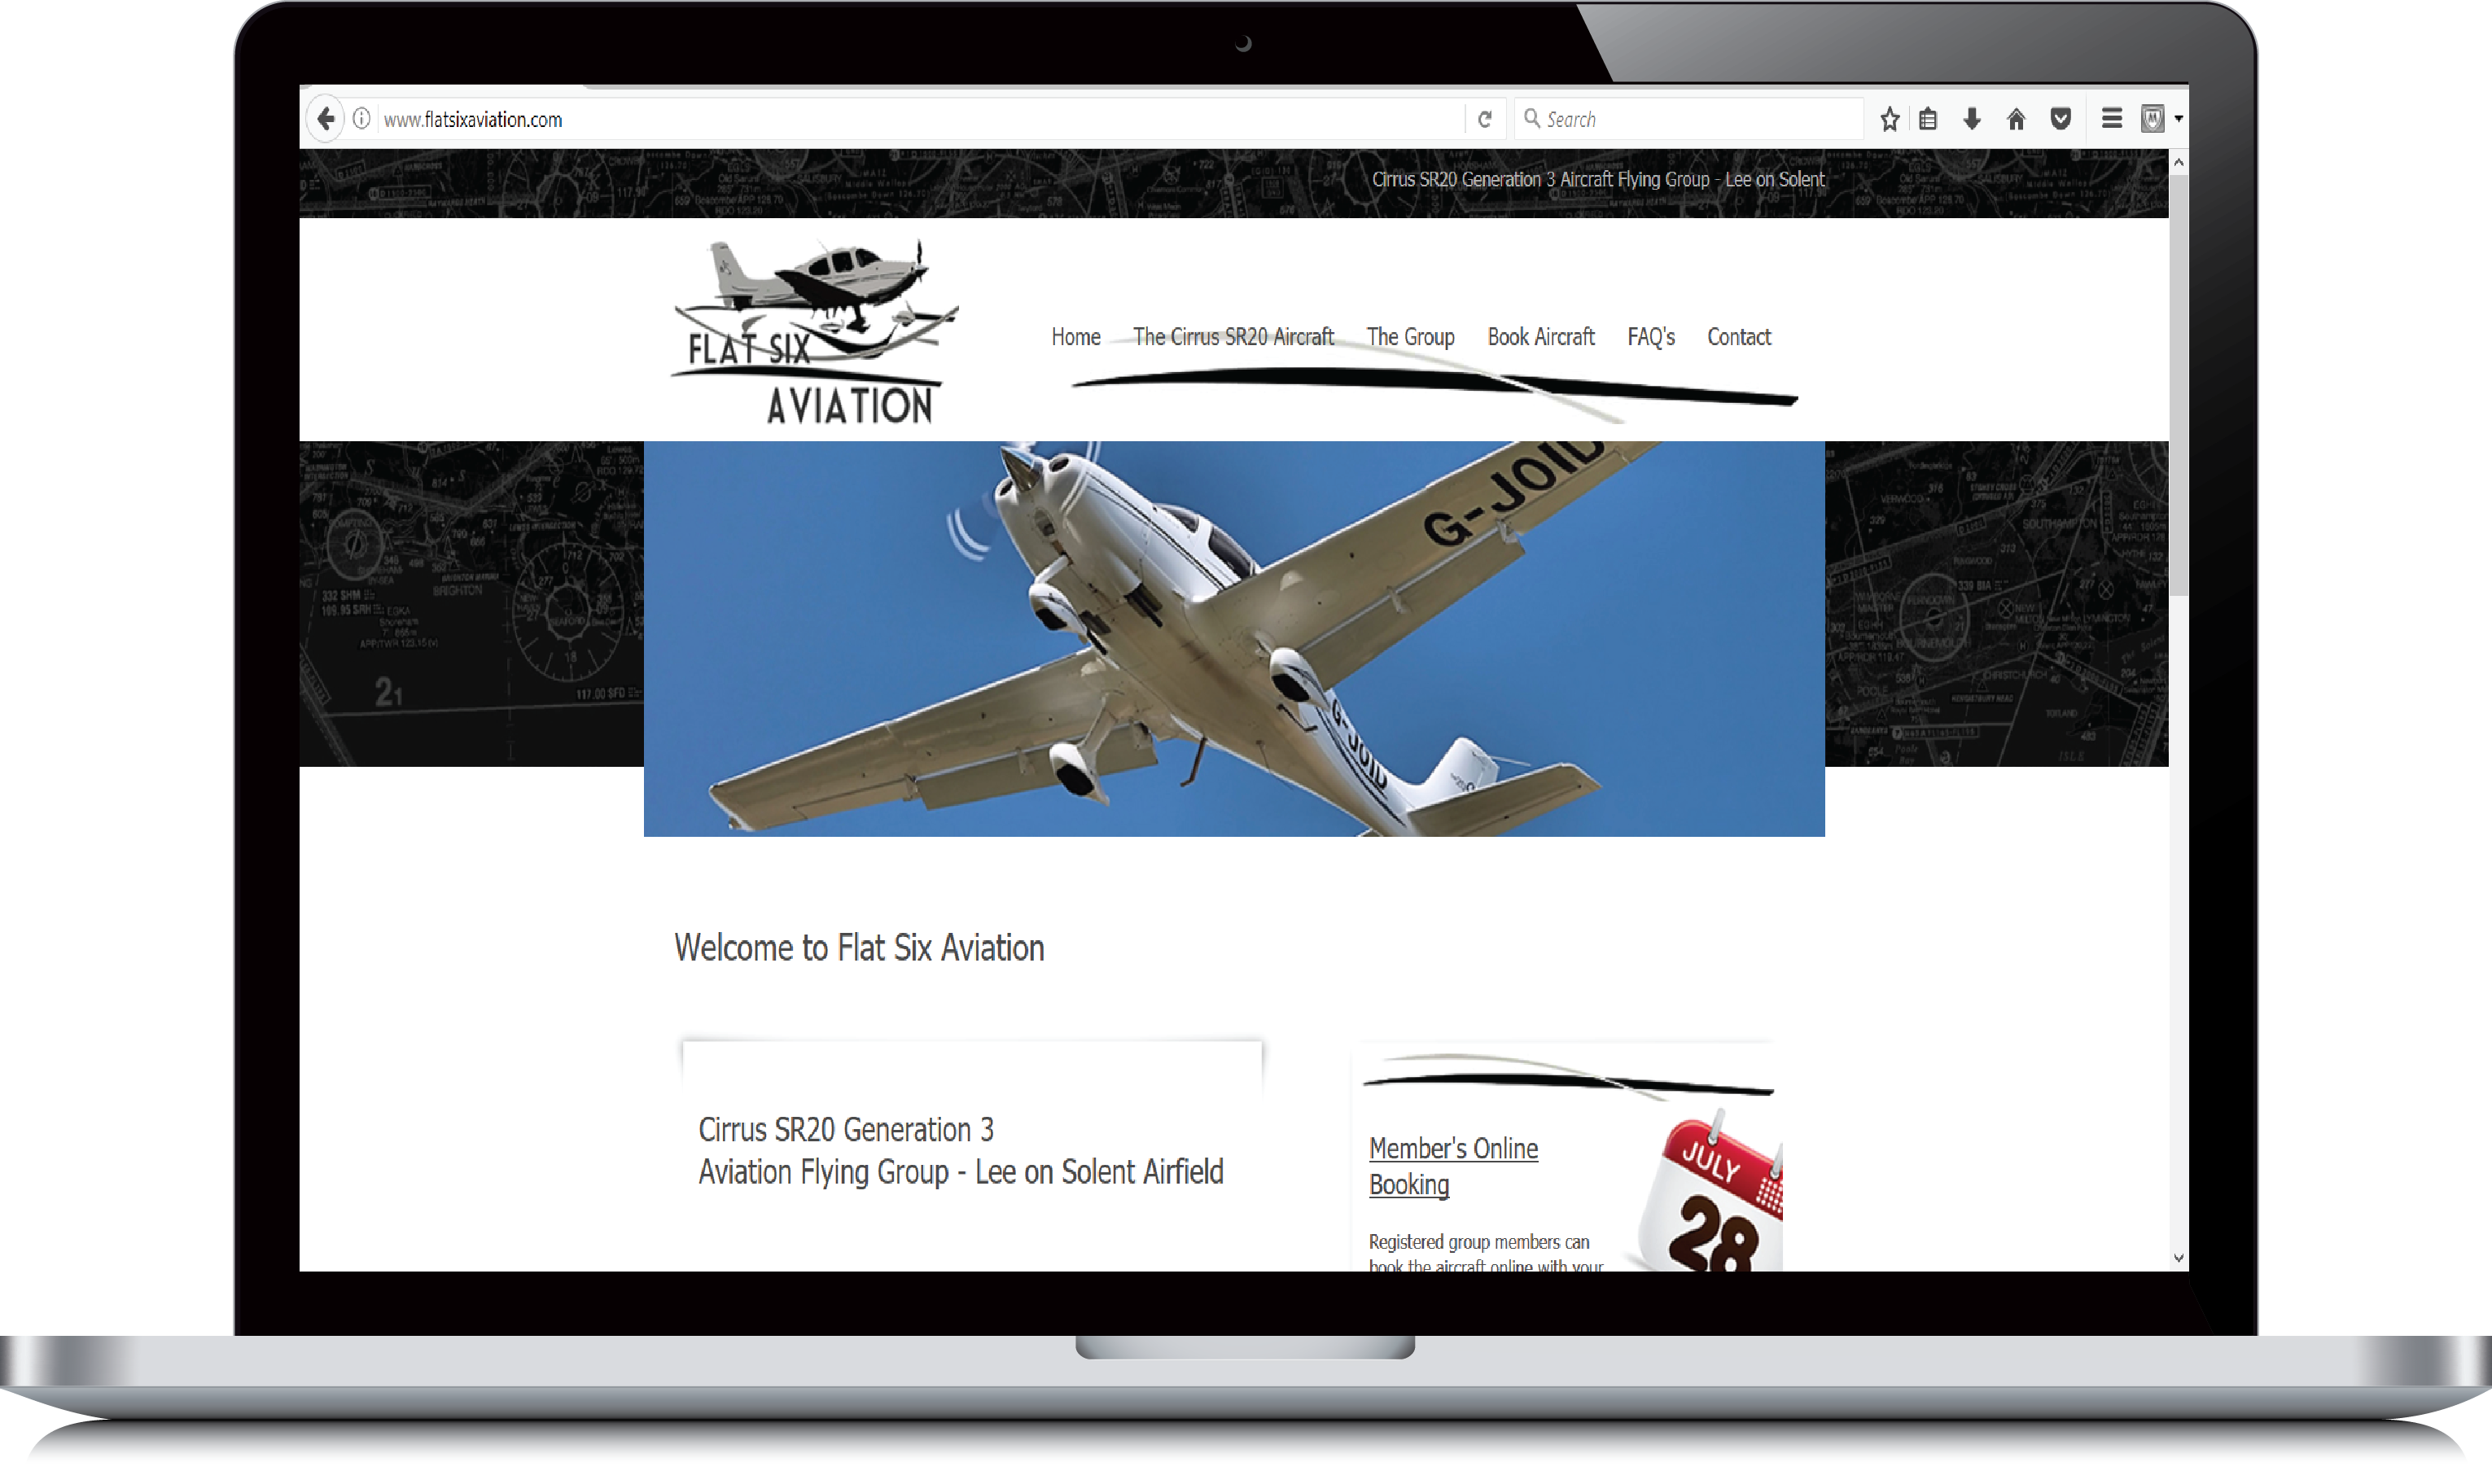 Flat Six Aviation website example view